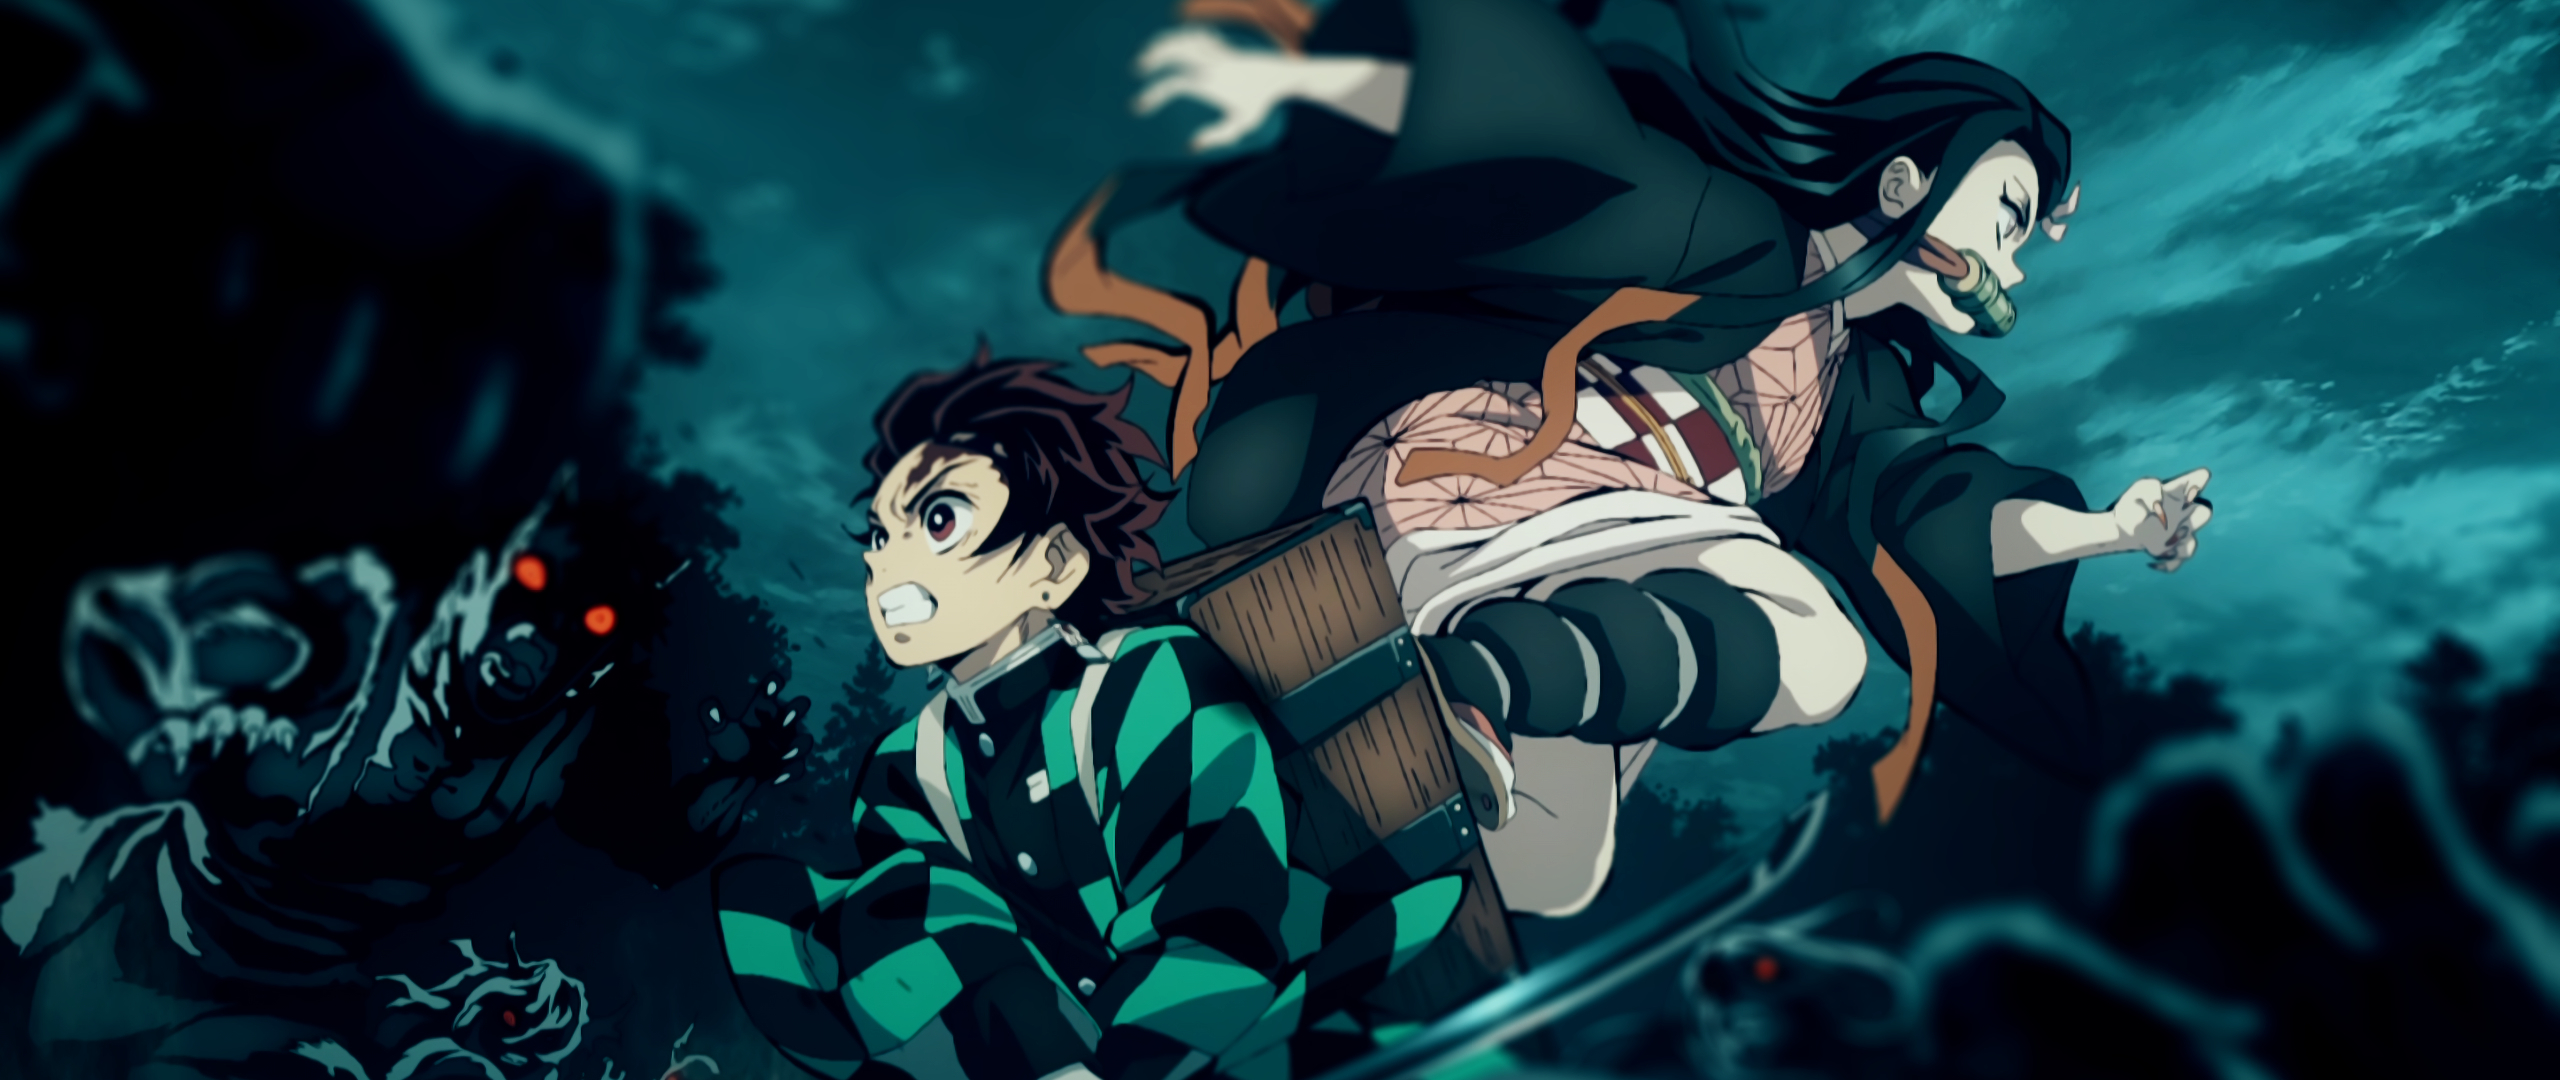 2560x1080 Tanjirou and Nezuko 2560x1080 Resolution Wallpaper, HD Anime 4K Wallpapers, Images ...